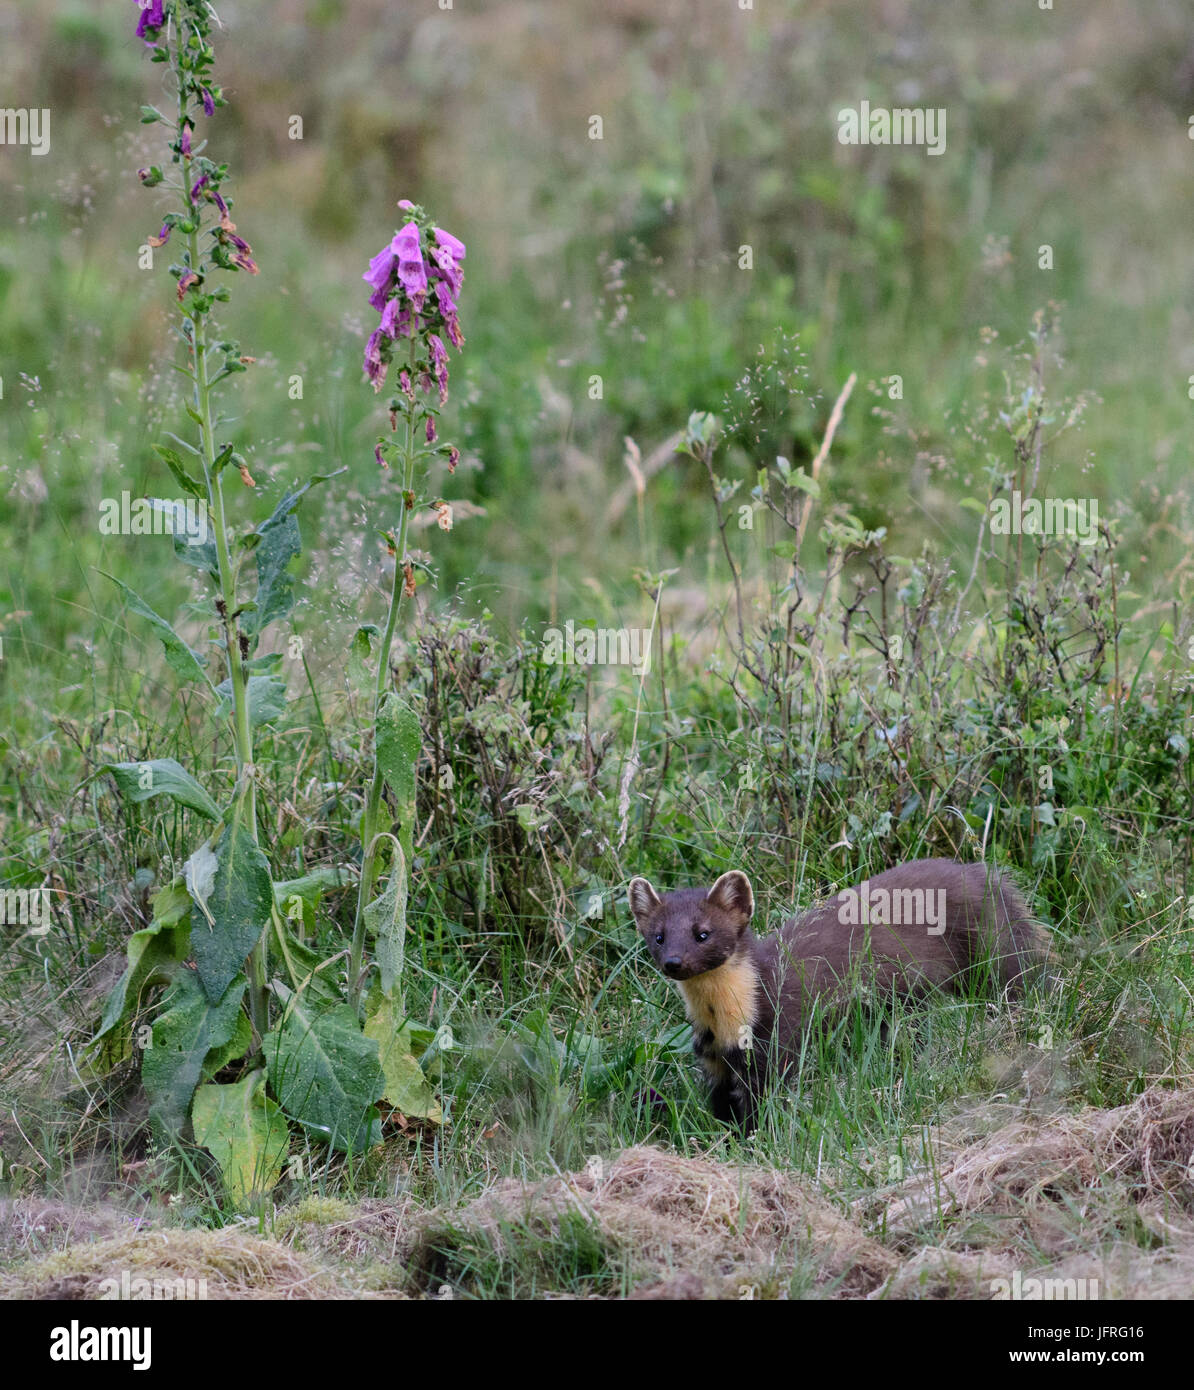 Pine marten in forest grass with a blooming foxglove flower during daylight. Veluwe, Netherlands. - Stock Image